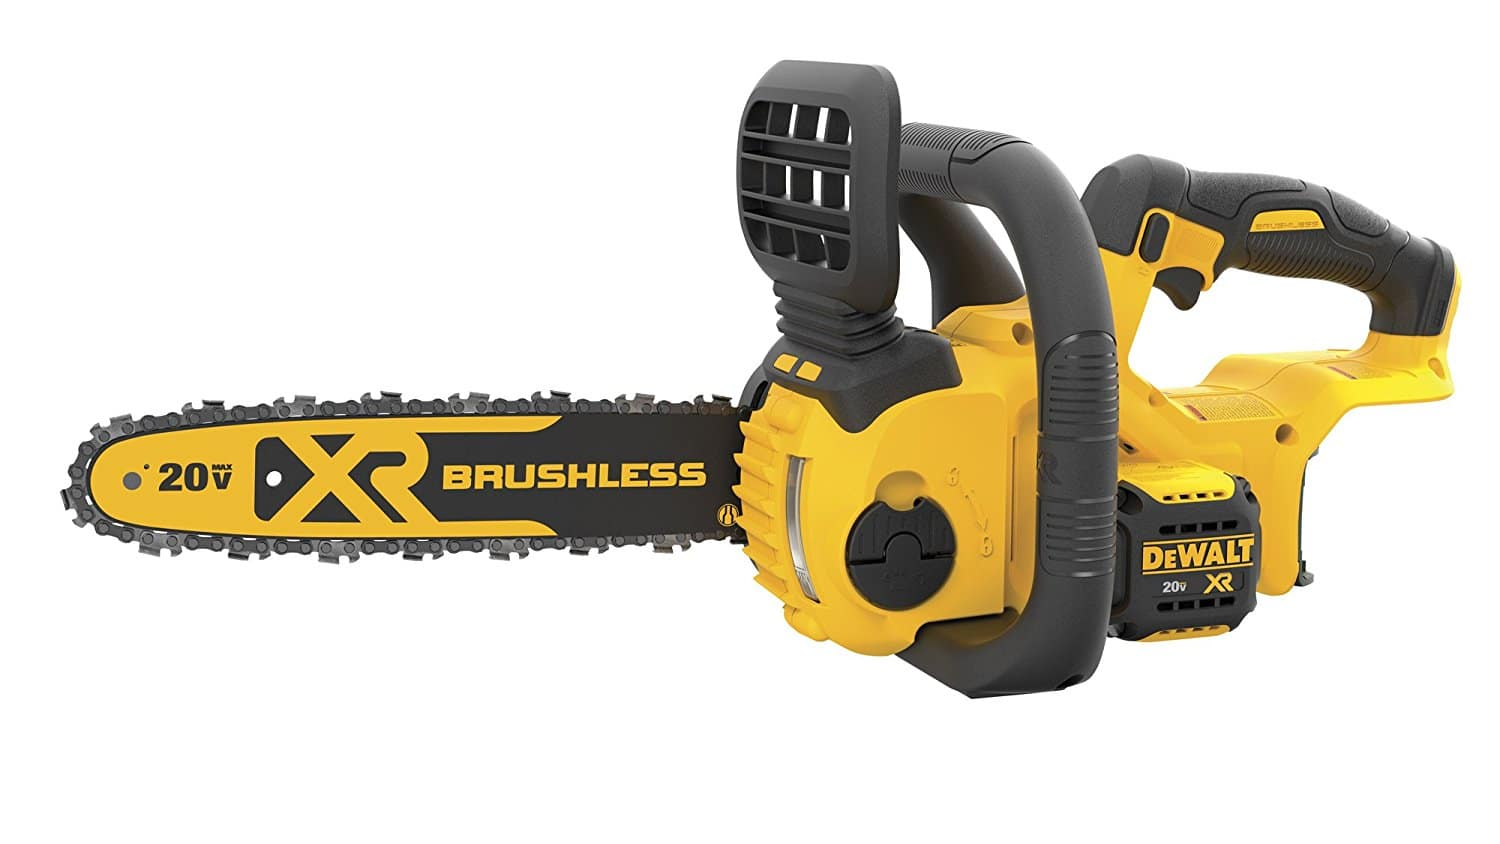 Dewalt 20v max compact chainsaw w brushless motor bare for Dewalt 20v brushless motor